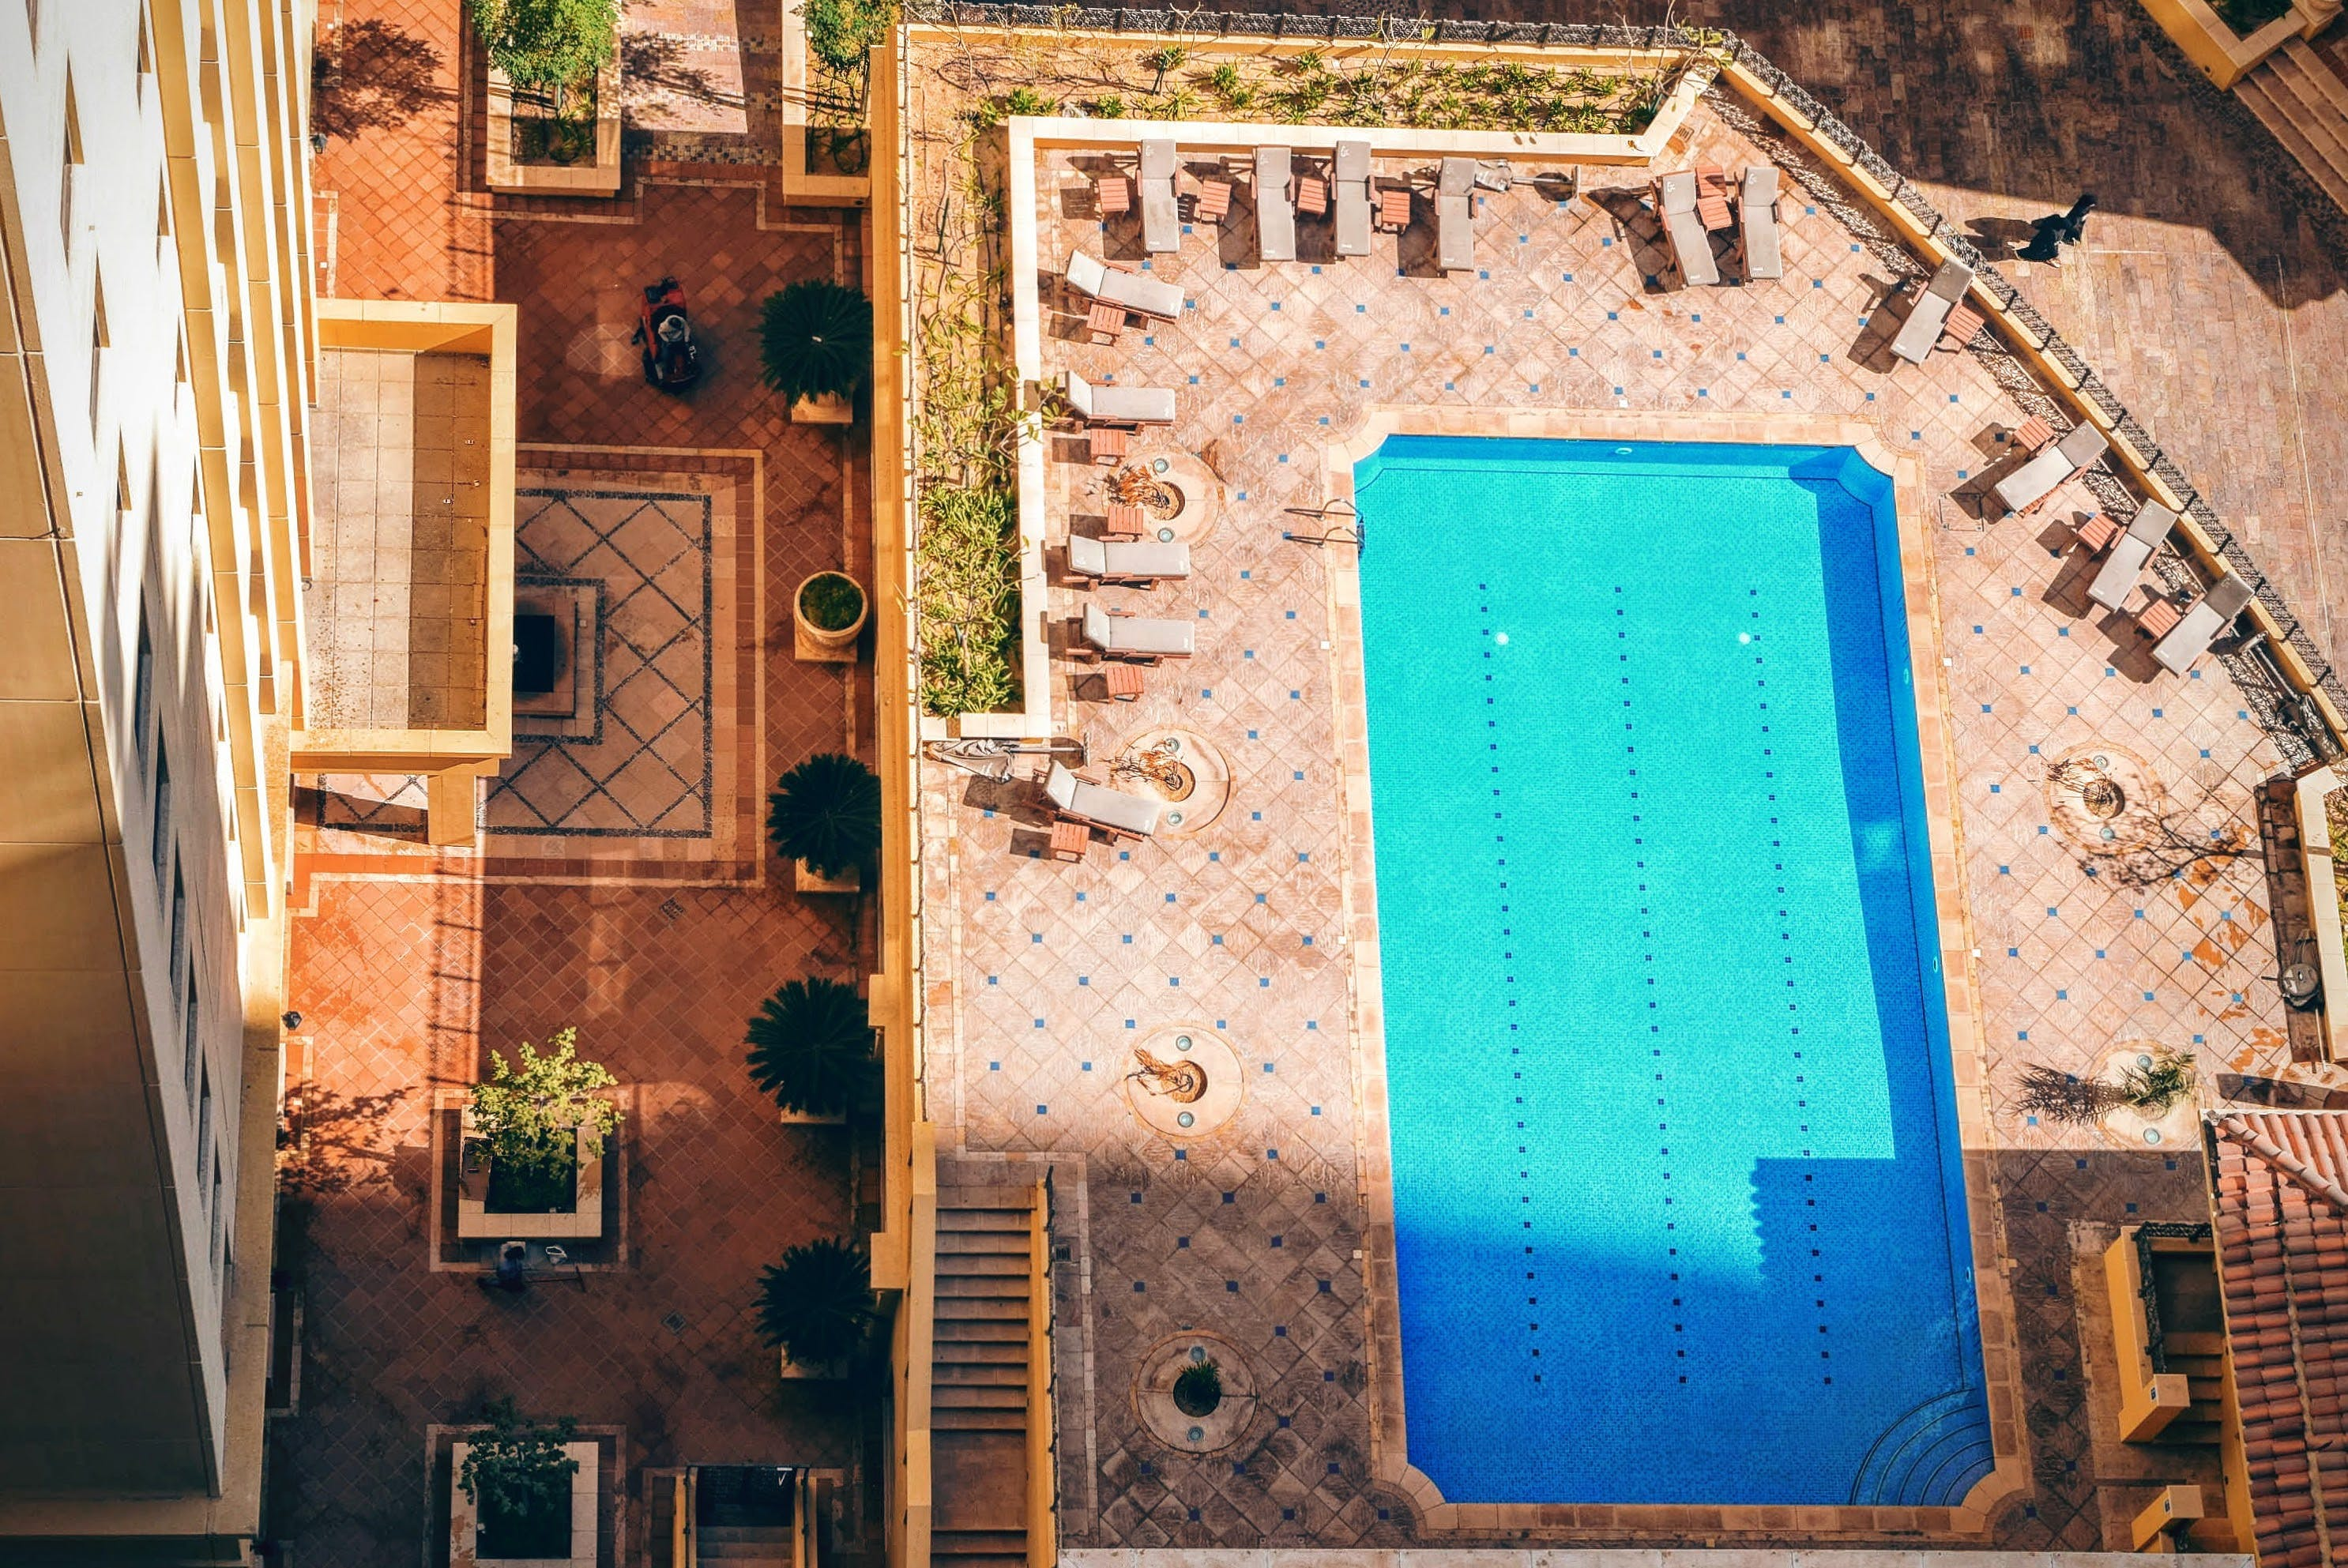 Rectangular Pool Near High Rise Building during Daytime